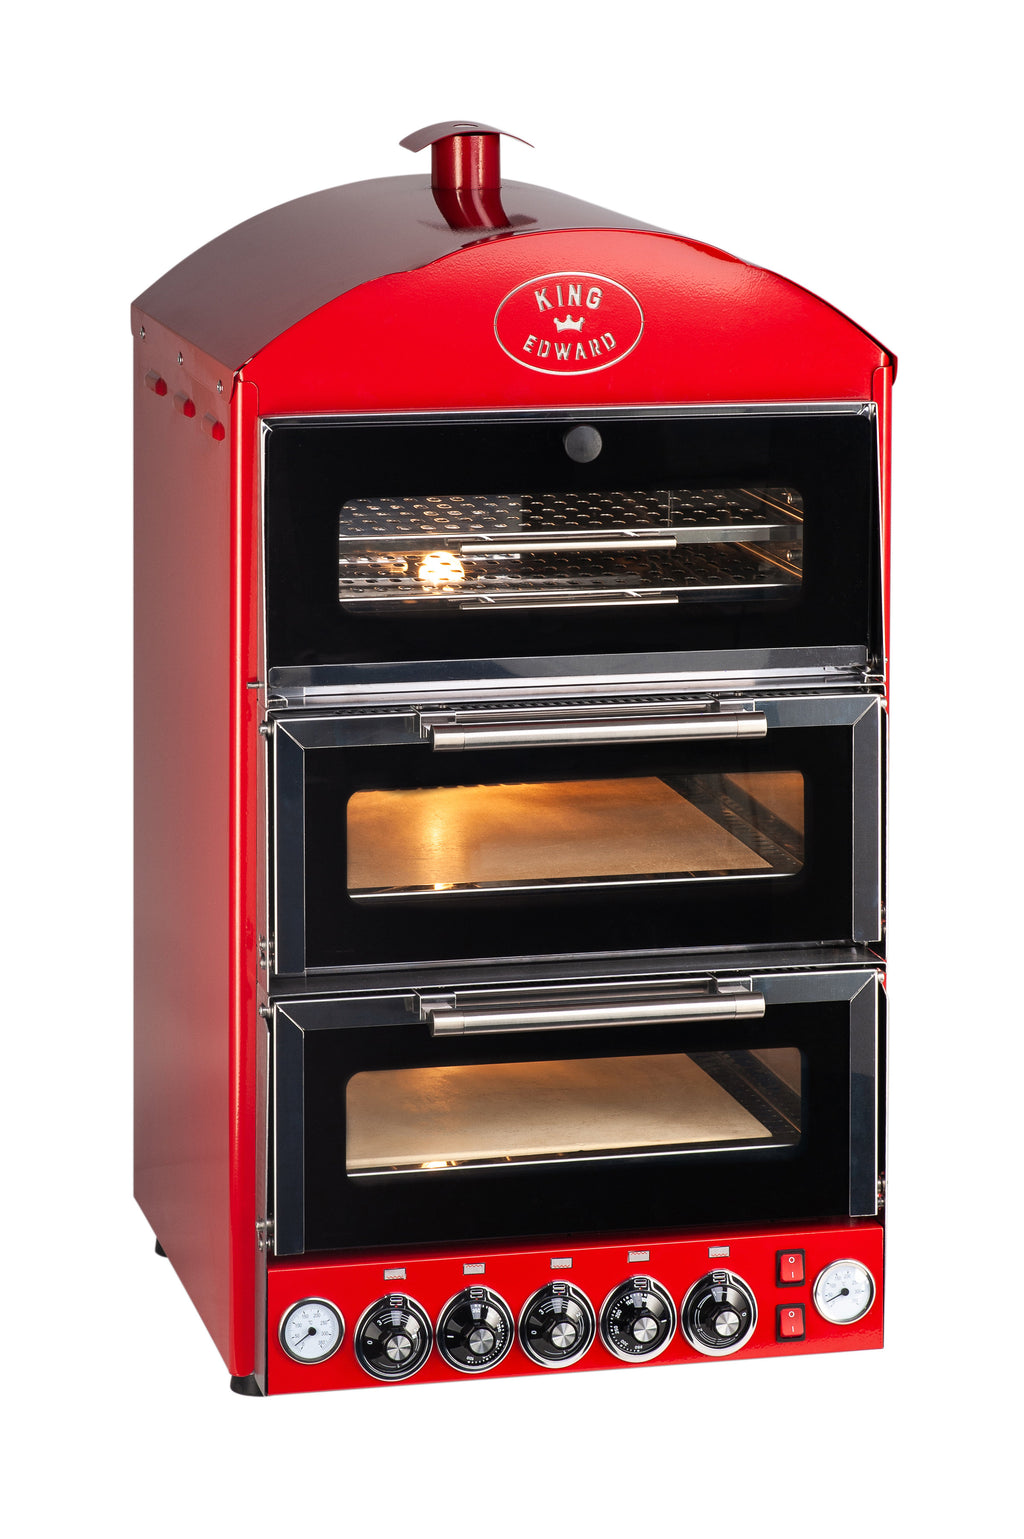 King Edward Pizza King Double Oven with Warmer PK2W - Red